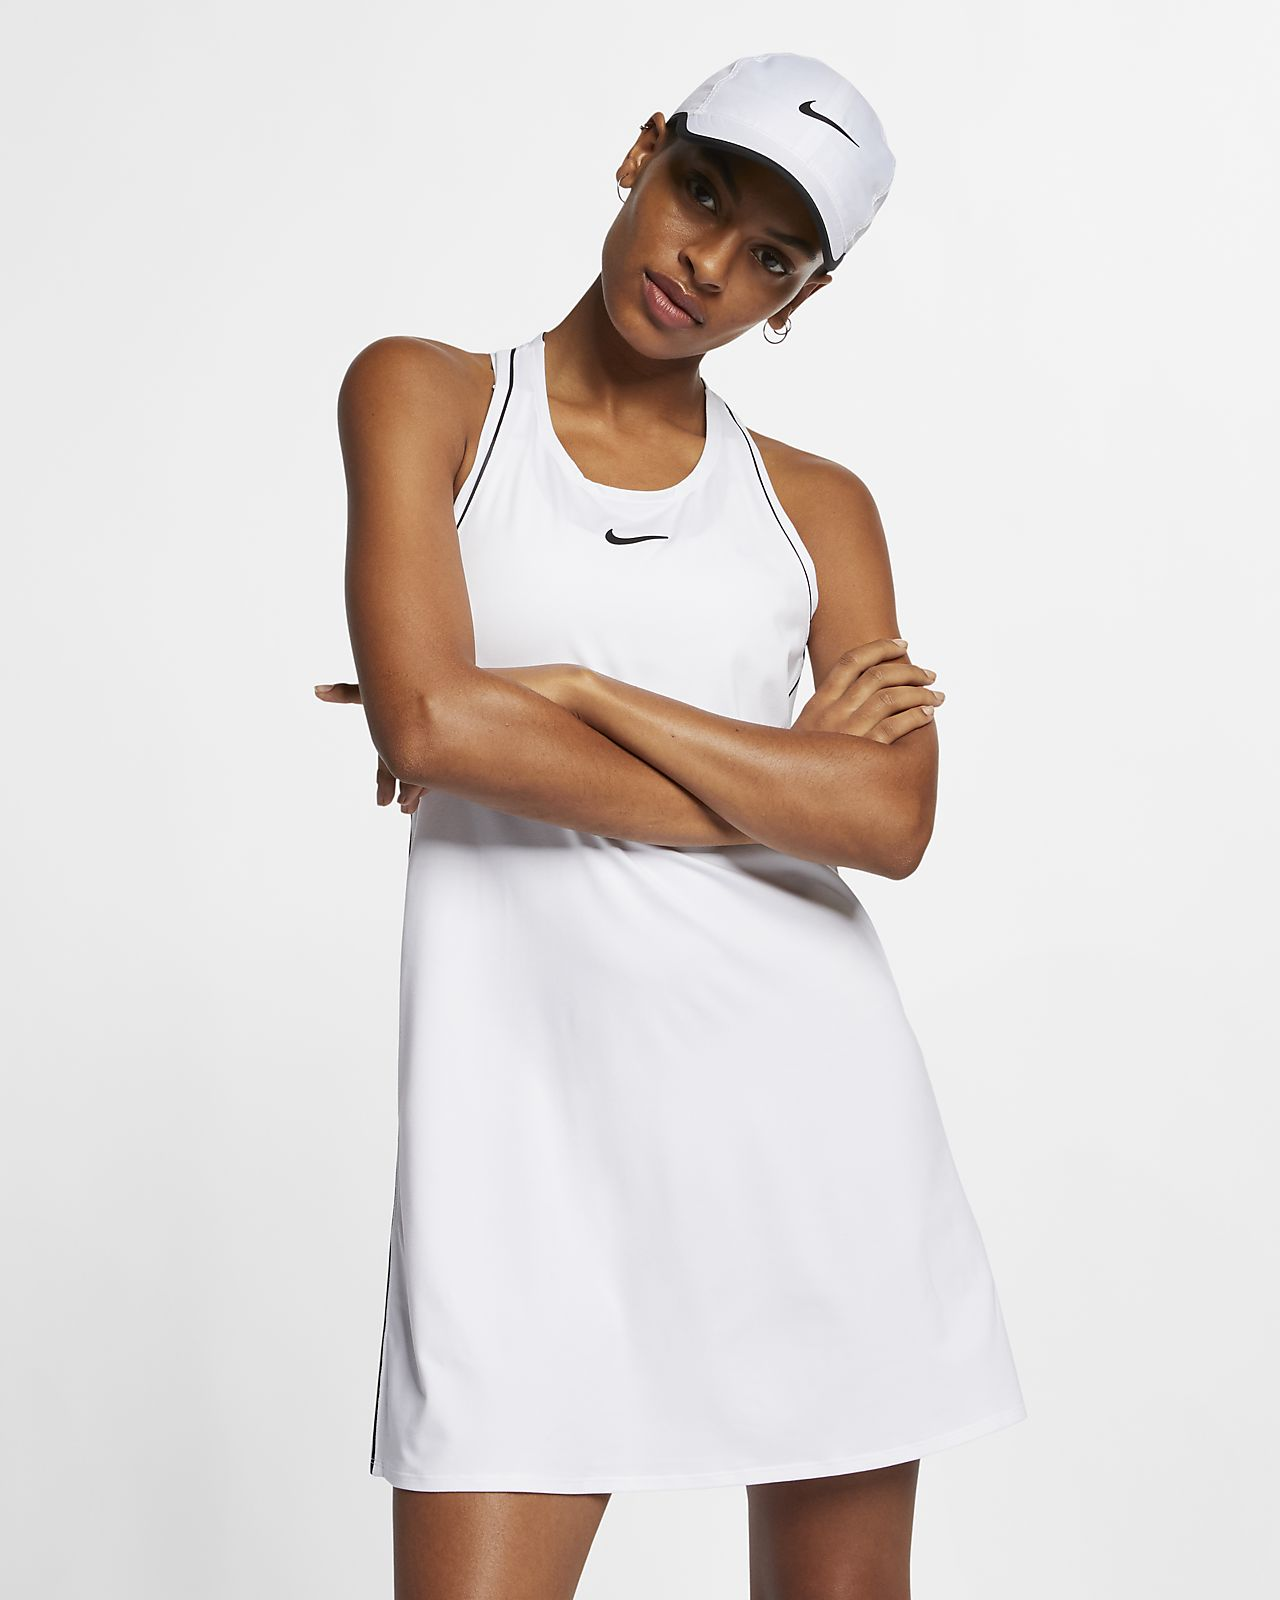 7d1271ff3 Women's Tennis Dress. NikeCourt Dri-FIT. £54.95. Low Resolution ...